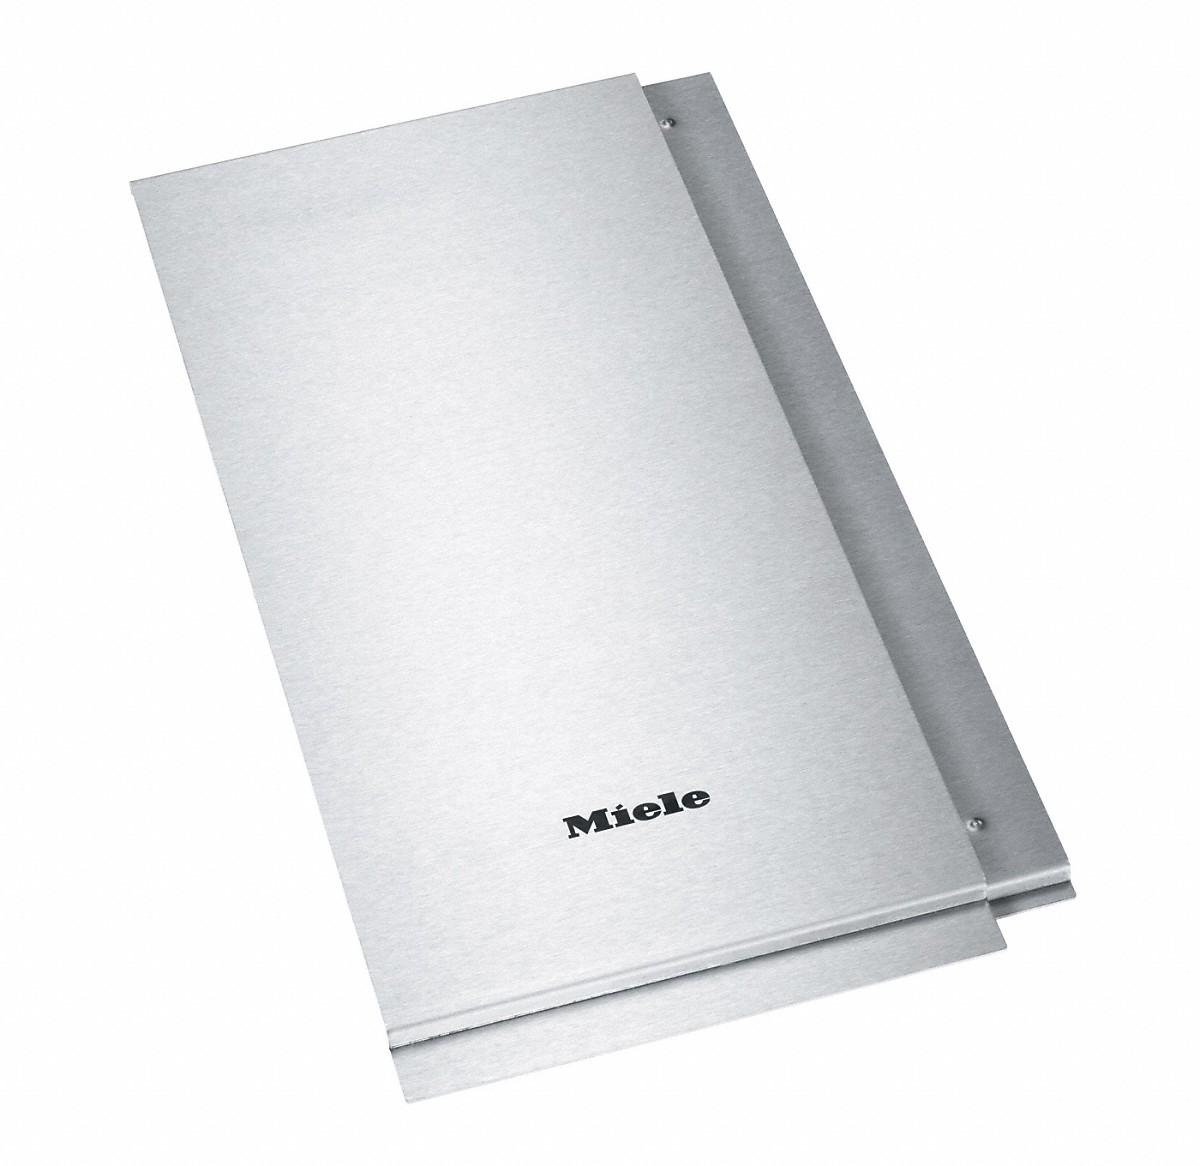 Miele Broil-griddle coverfor Ranges and Rangetops